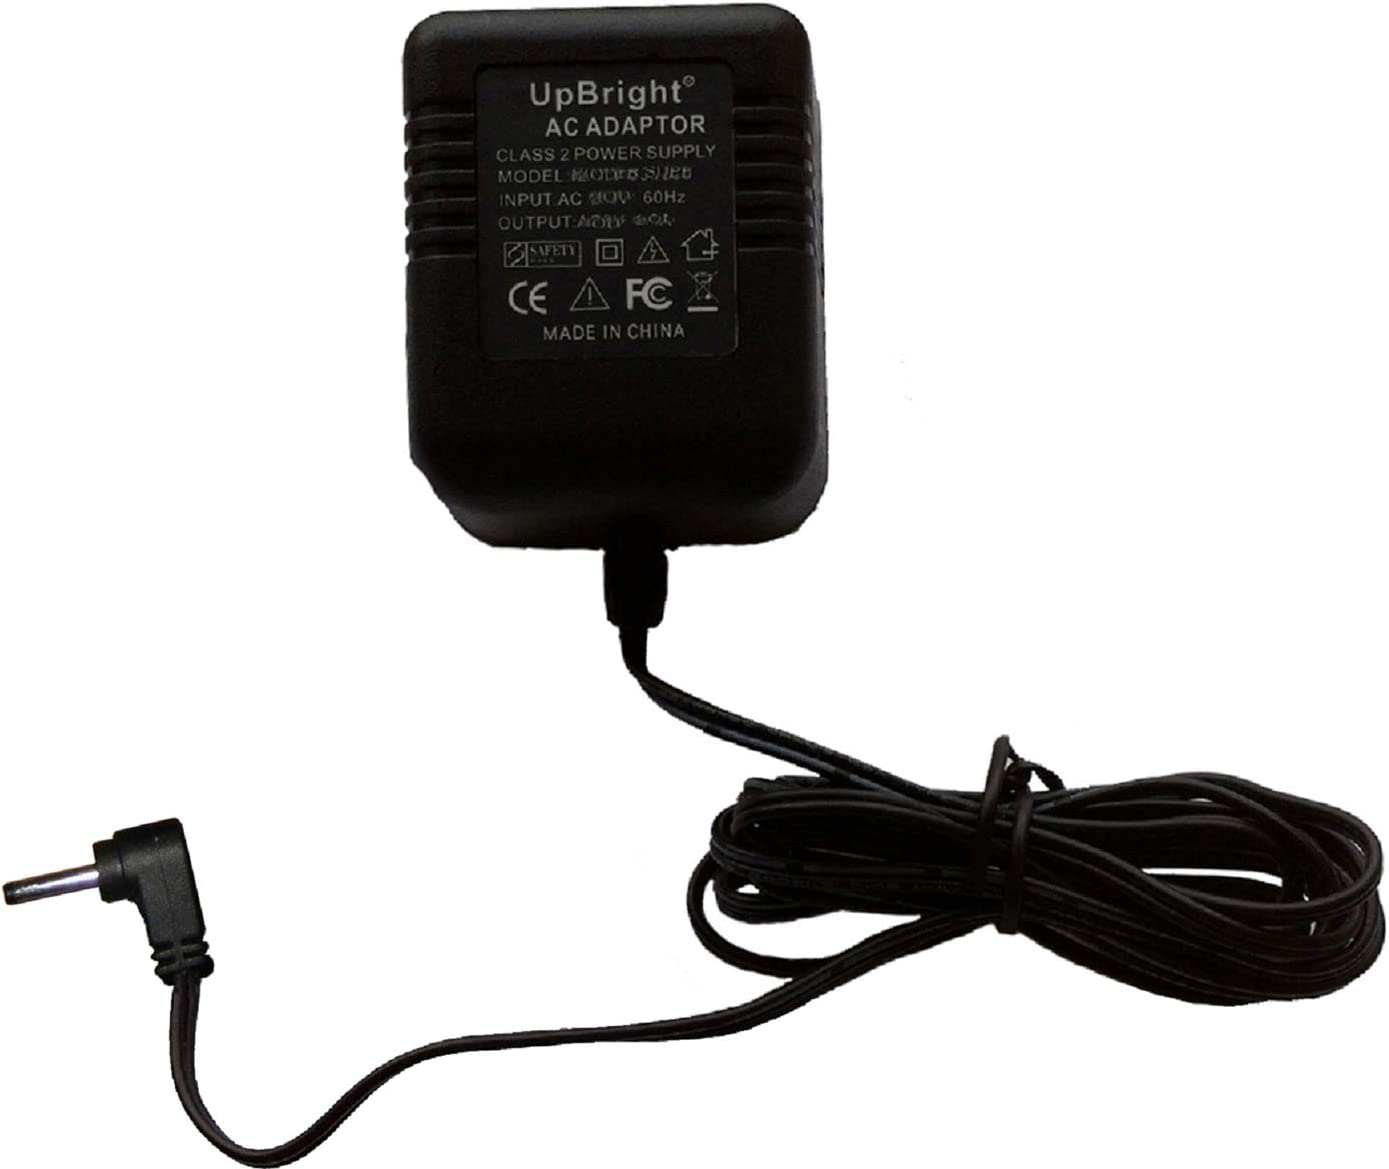 UpBright AC 6V AC Adapter Compatible with Vtech AT&T EL52353 EL52253 EL52203 EL52103 EL 52303 DECT 6.0 Cordless Phone Answering System Extra expansion handset Cradle Dock 6VAC Power Charger (NOT DC6V)